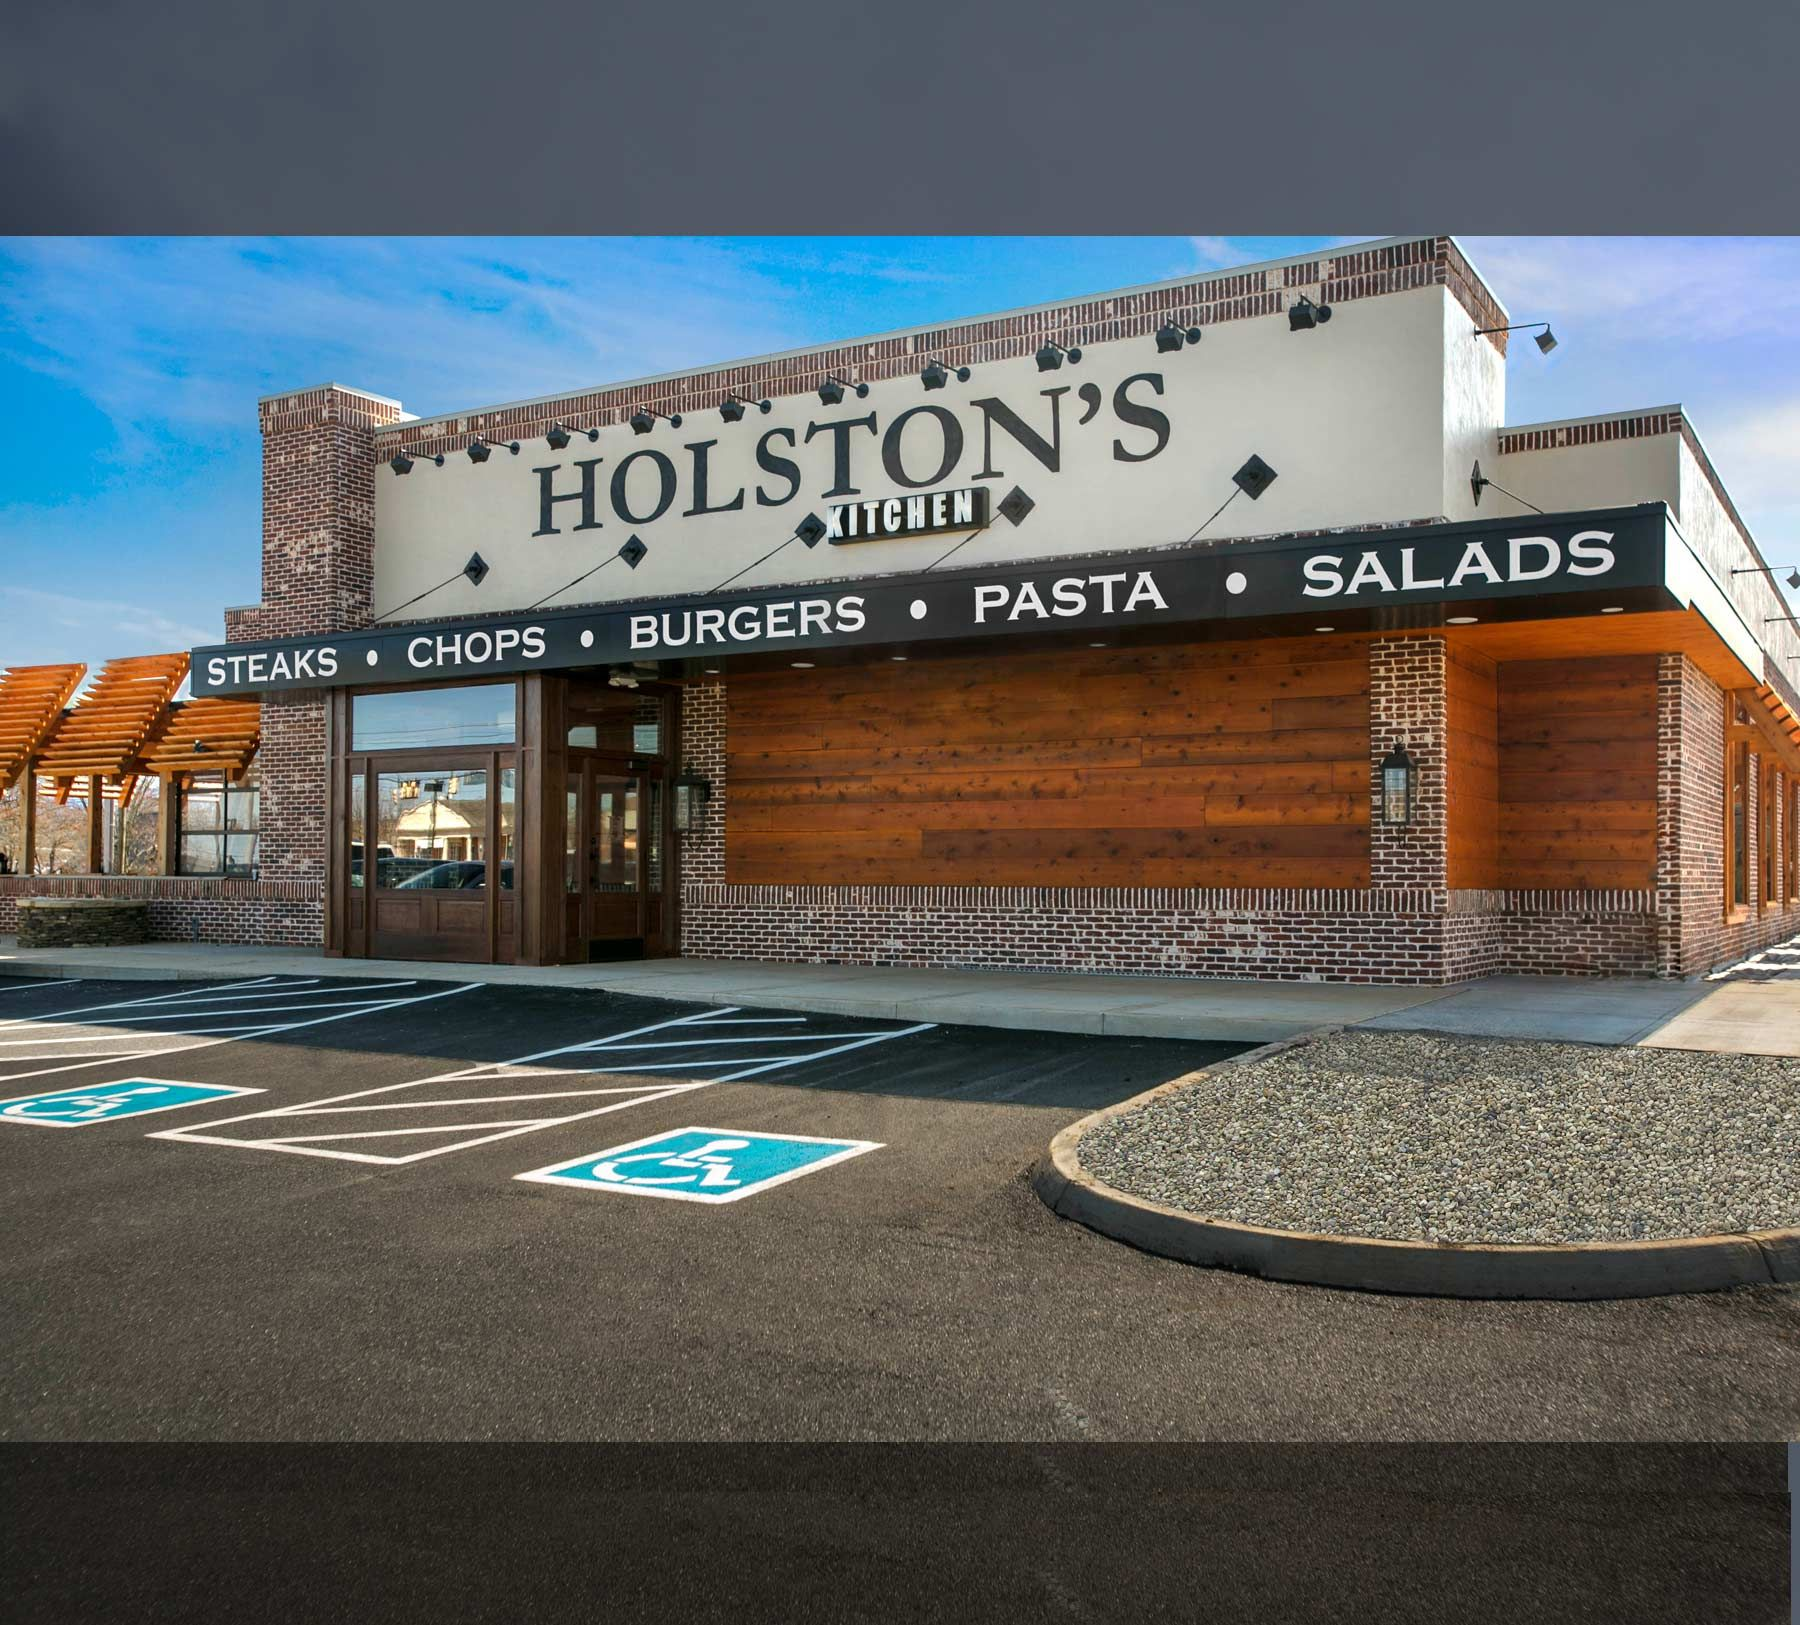 Holstons kitchen casual dining restaurant casual